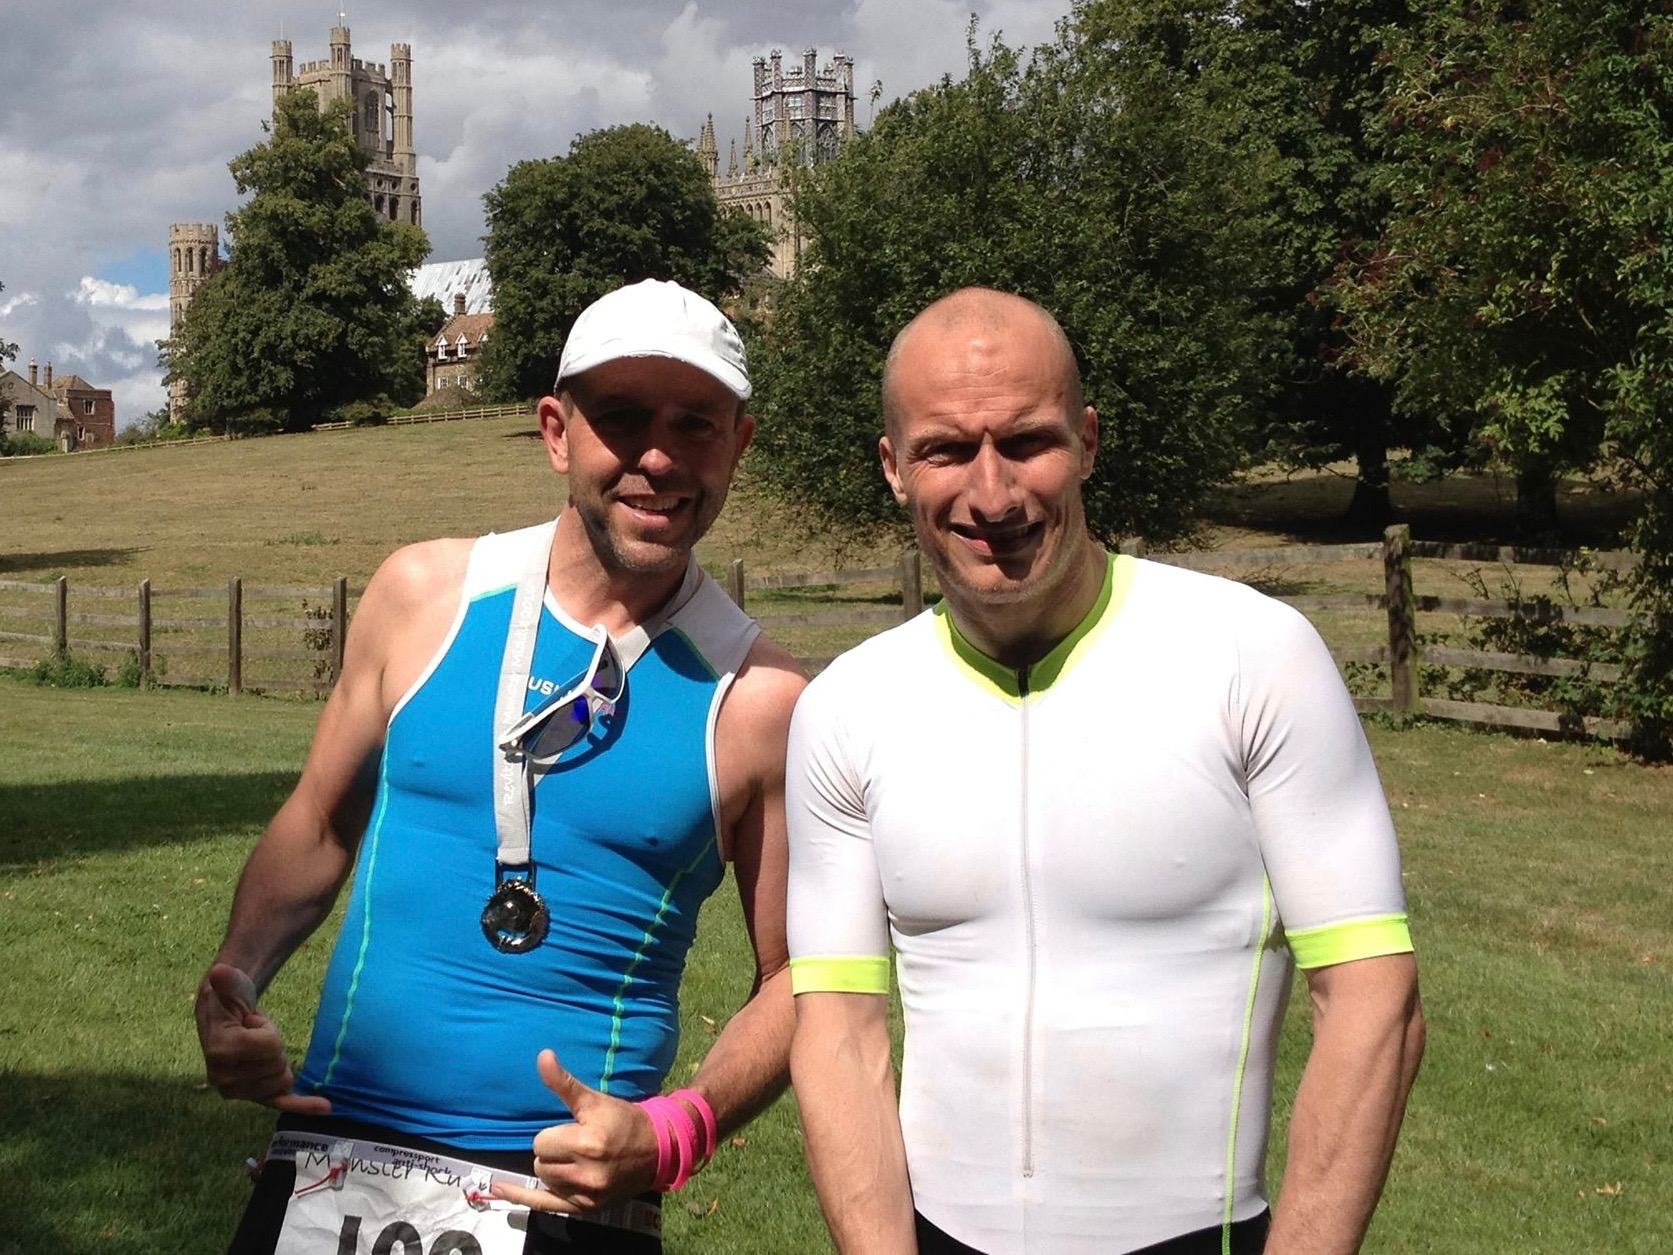 Post finish line pose at the Monster Middle Distance Triathlon 2016